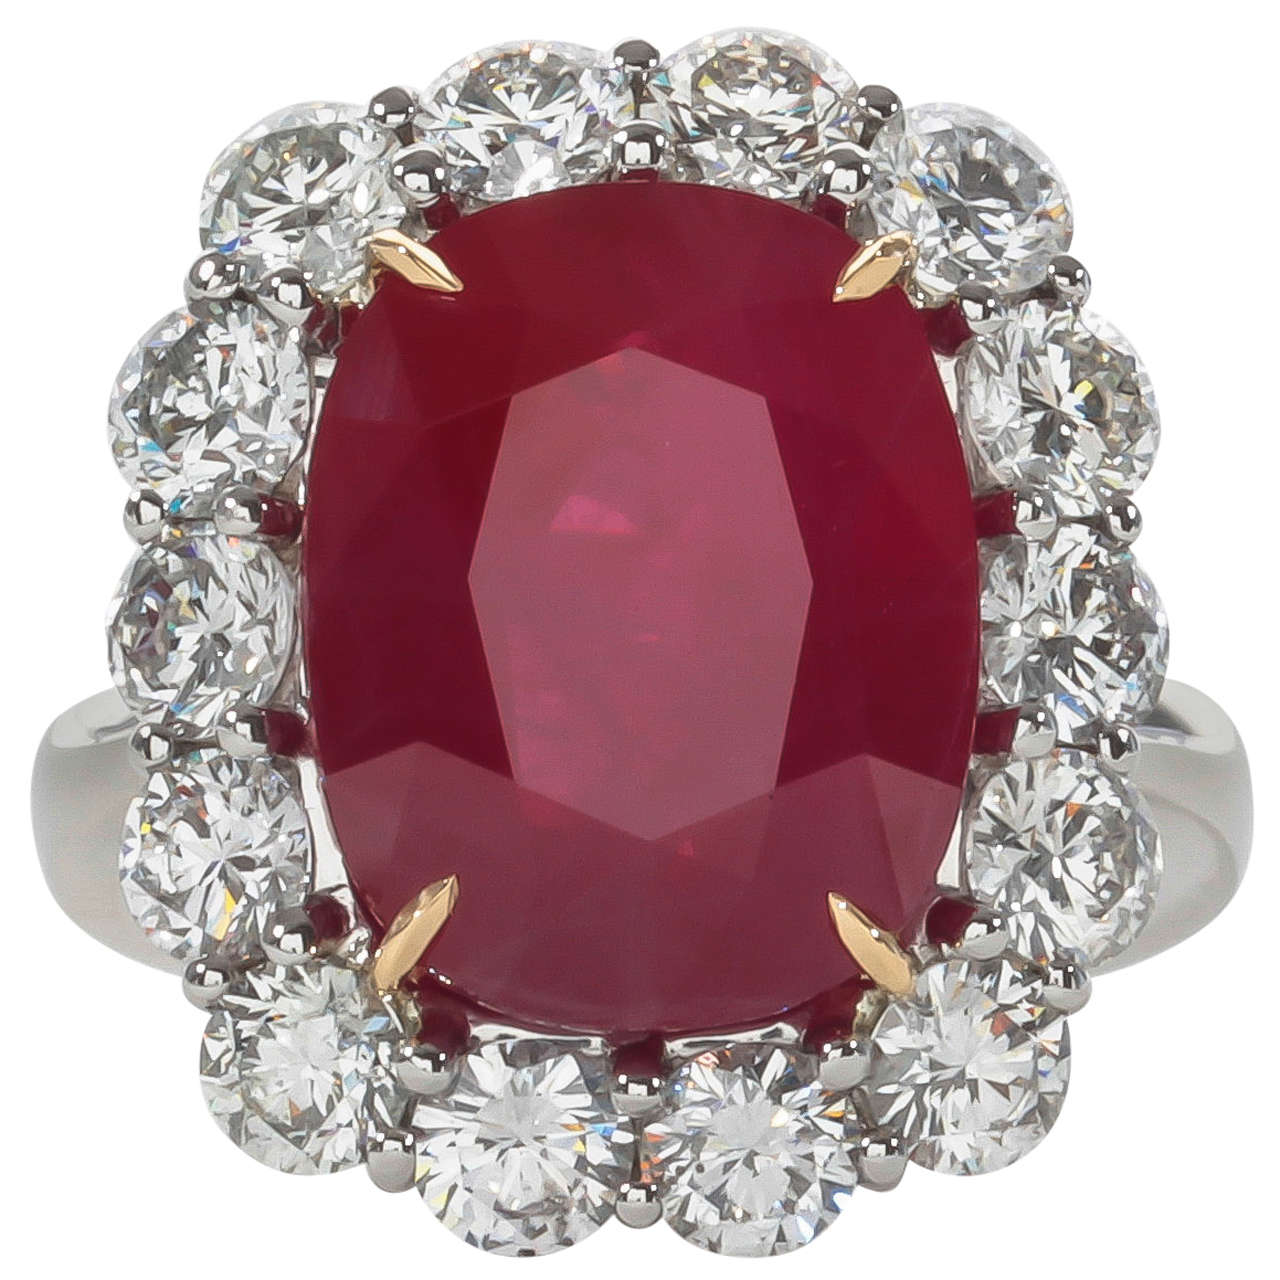 Rare Ten Carat Burma Ruby Diamond Ring  From A Unique Collection Of  Vintage Cocktail Rings